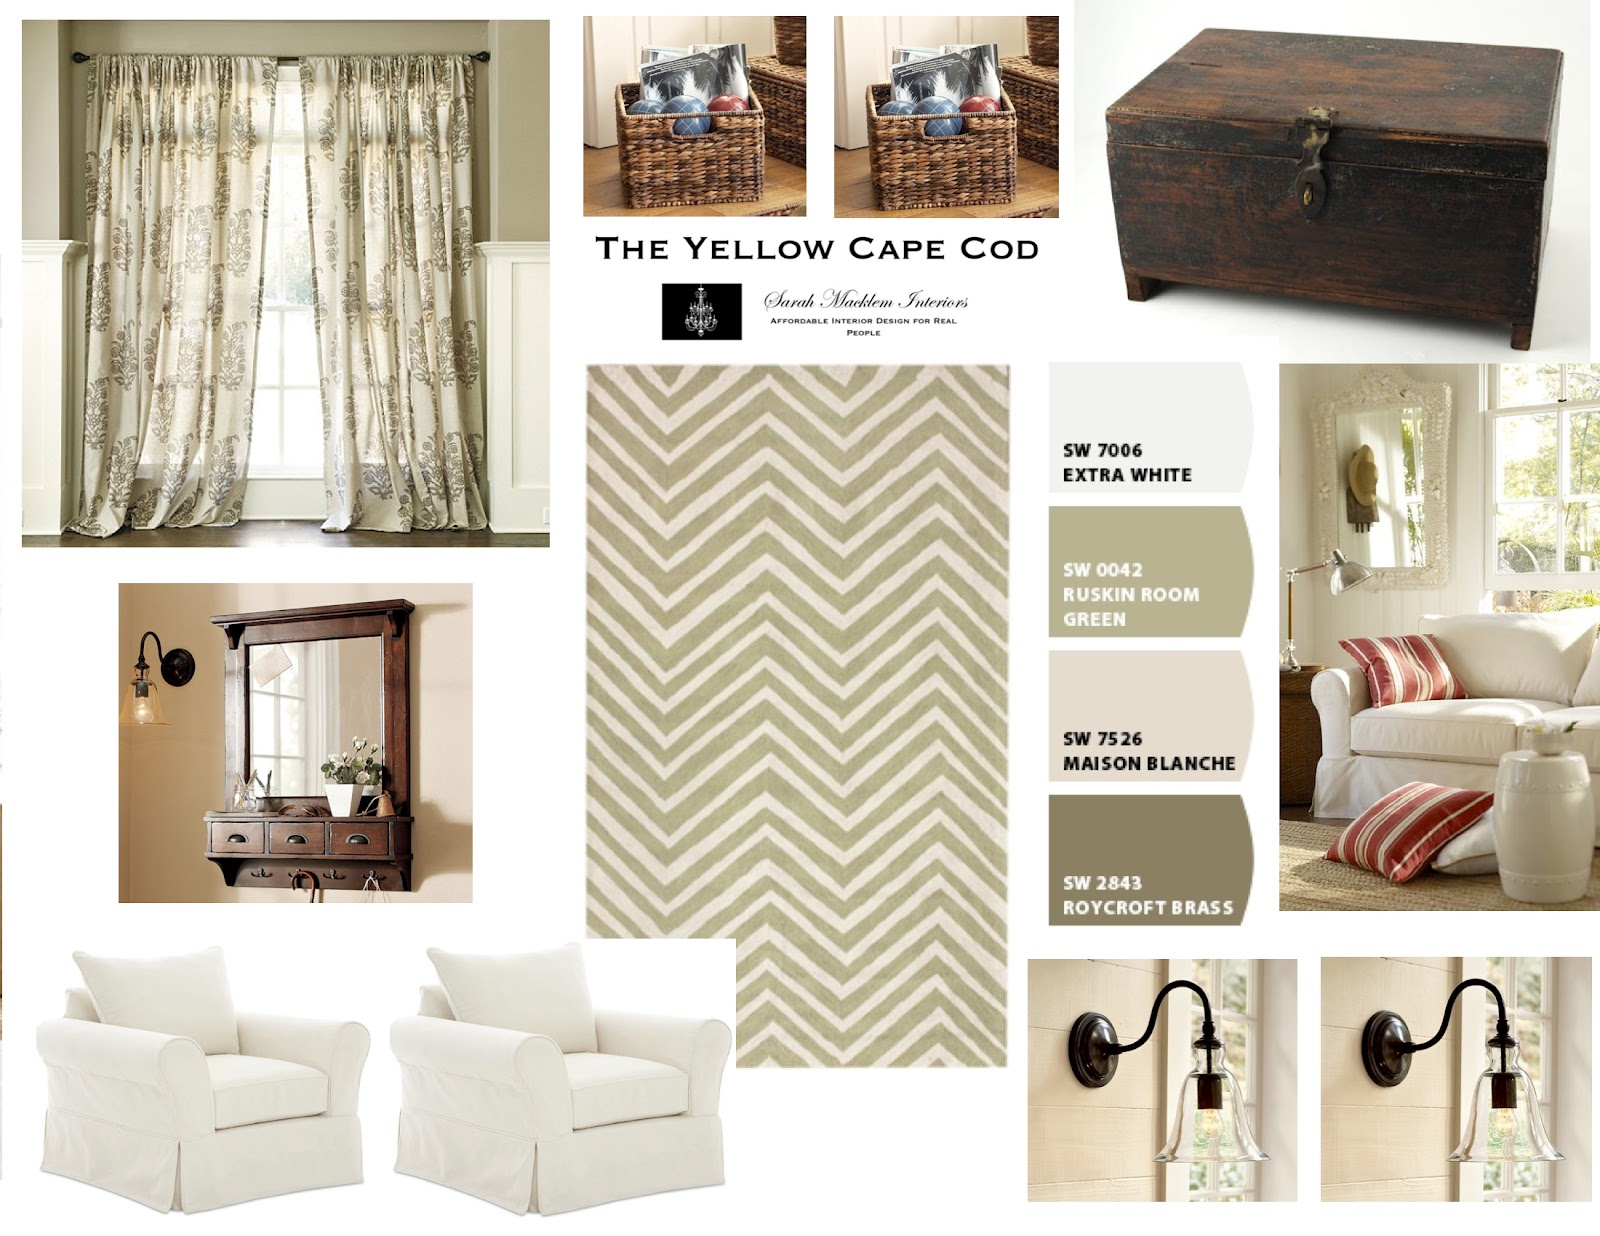 Used A Combination Of Time Worn Furnishings A Fresh Color Palette